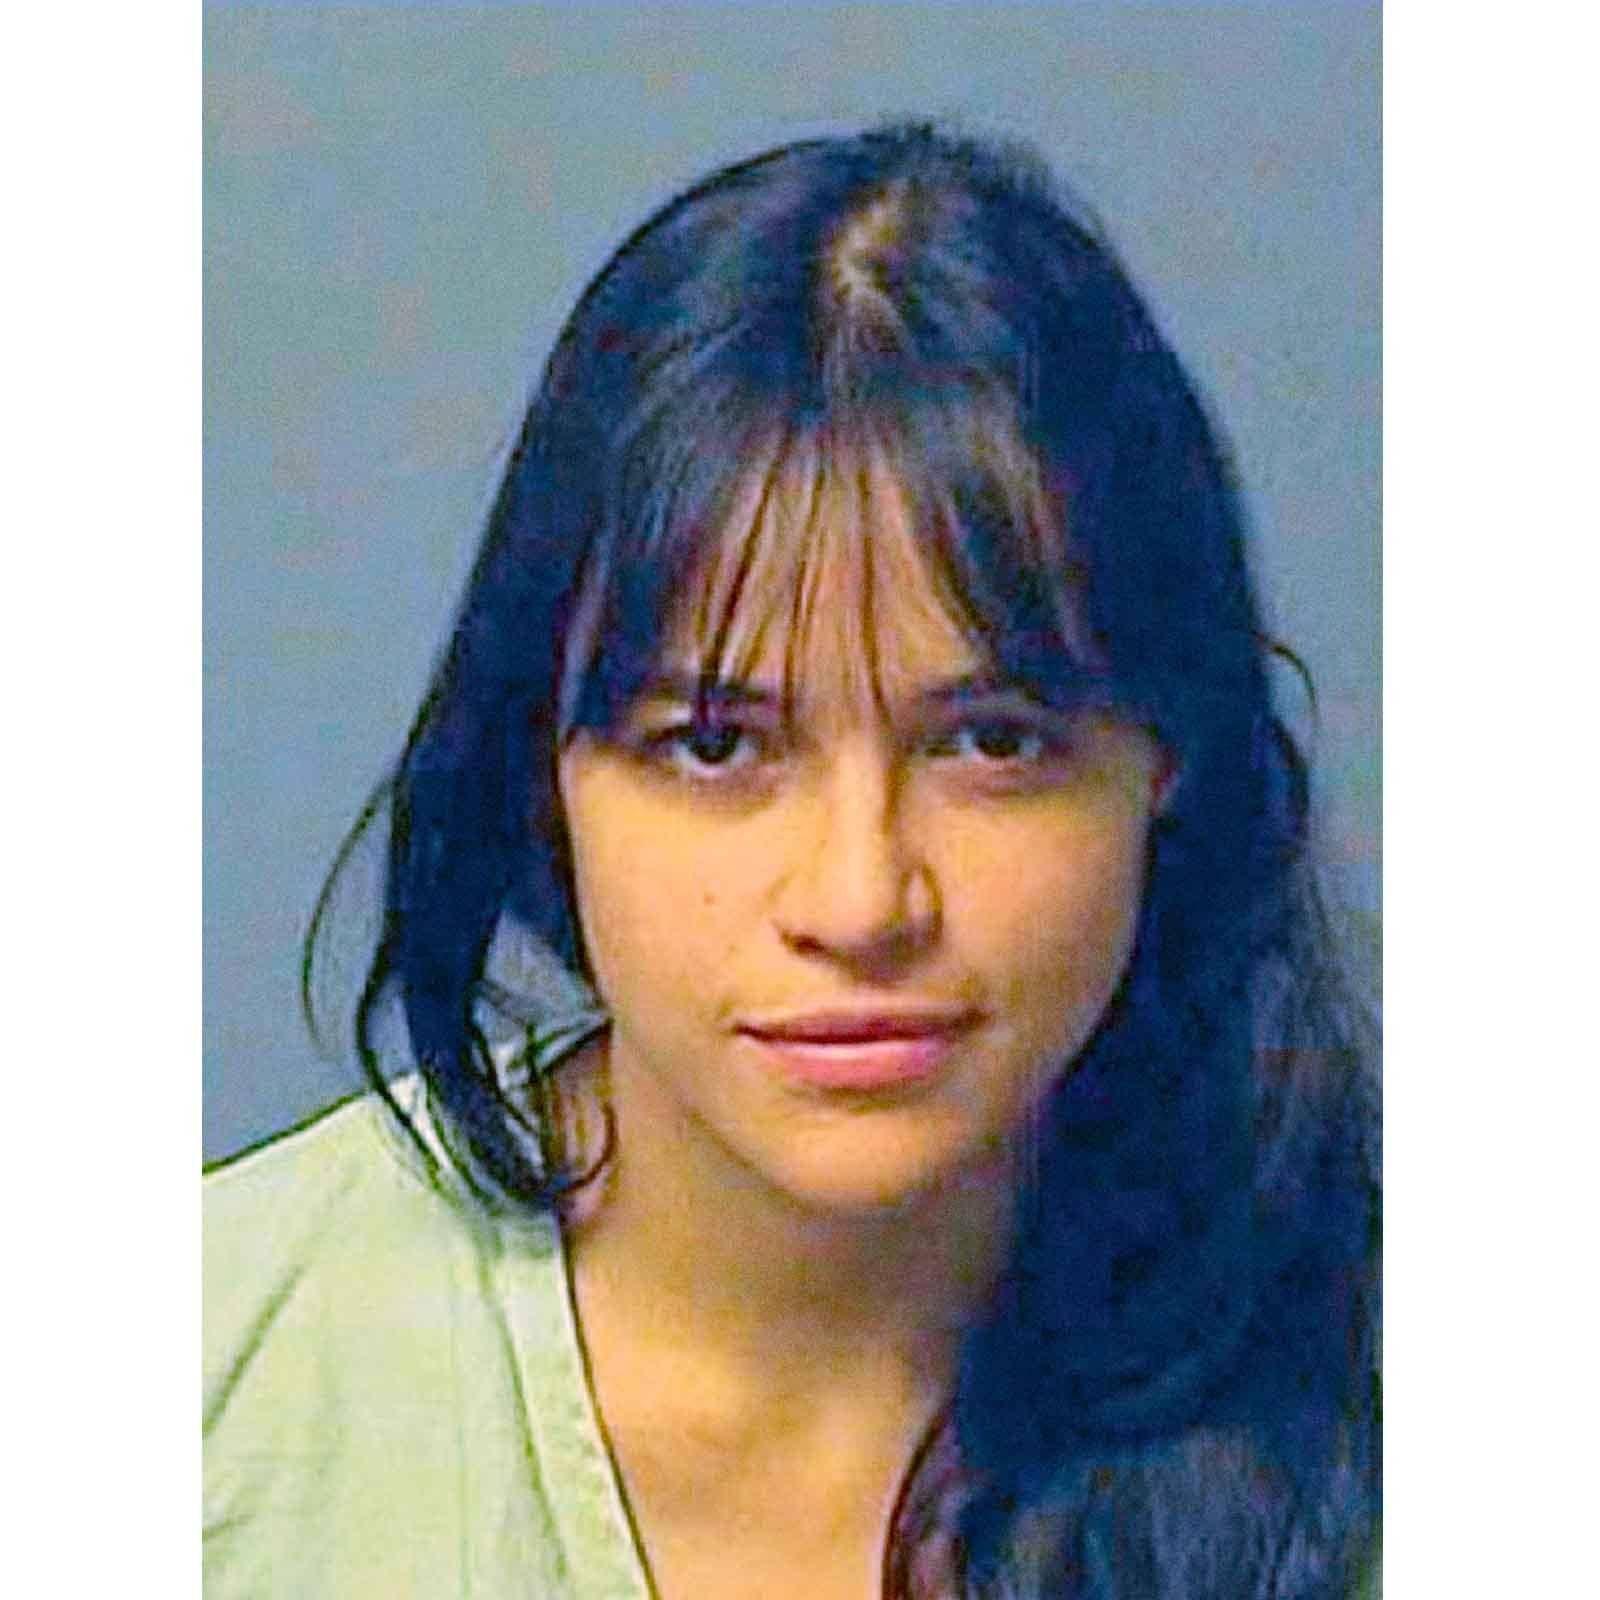 Michelle Rodriguez, 2007   Mayte Michelle Rodriguez is photographed here in 2007 as she enters the Los Angeles County jail to serve a 6 month sentence for violating probation terms for three previous drunken driving and hit and run offenses in 2004.  Rodriguez was found  to have consumed alcohol on 3 occasions while wearing a monitoring ankle bracelet and also not meeting other terms.